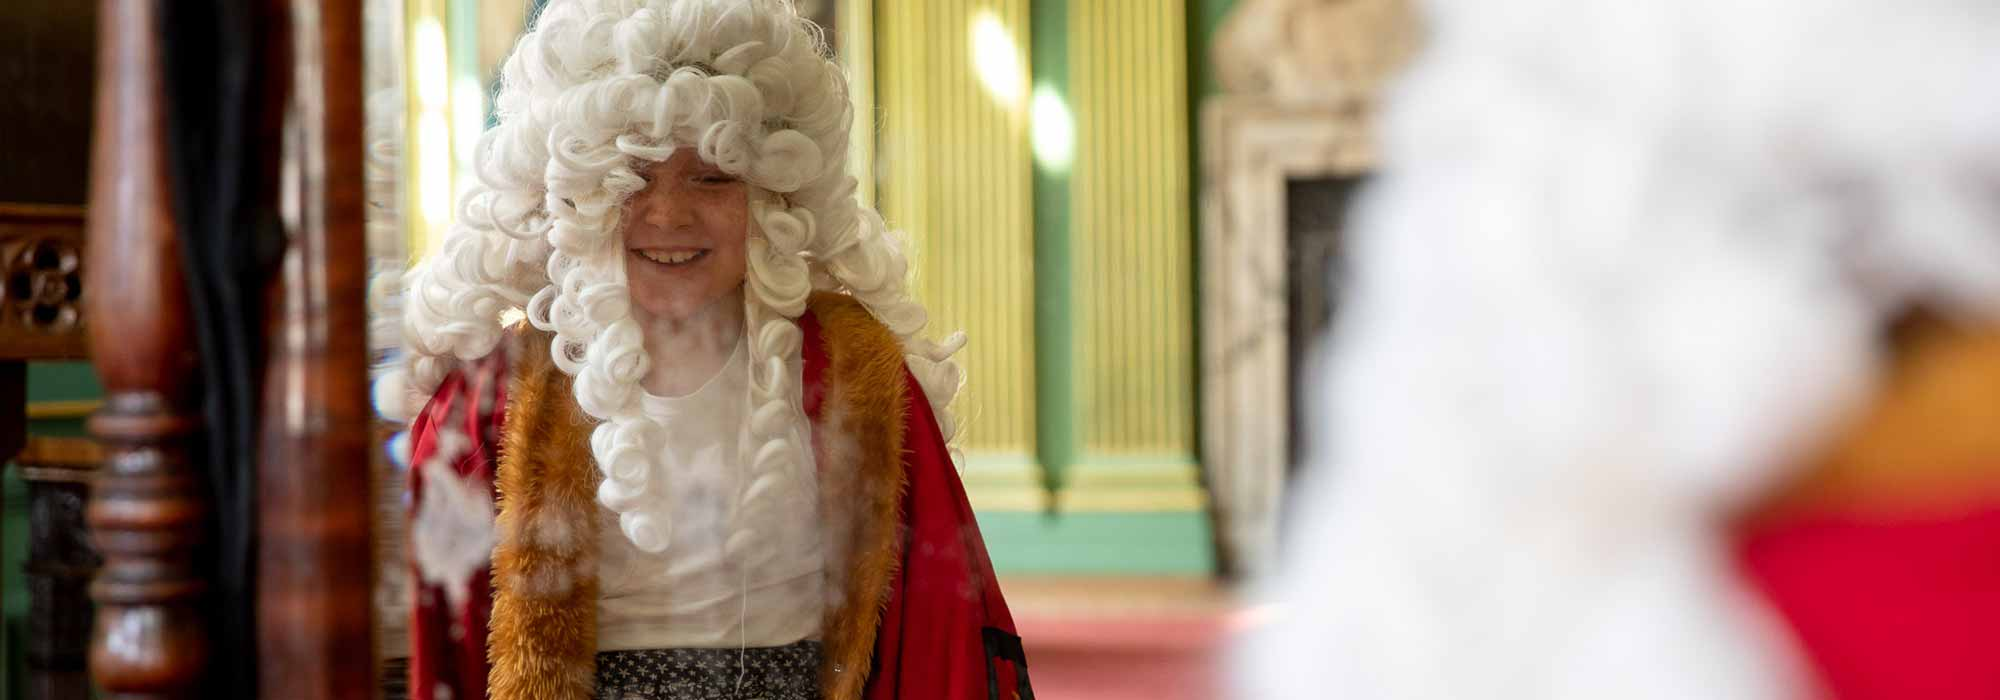 Learning mansion house history